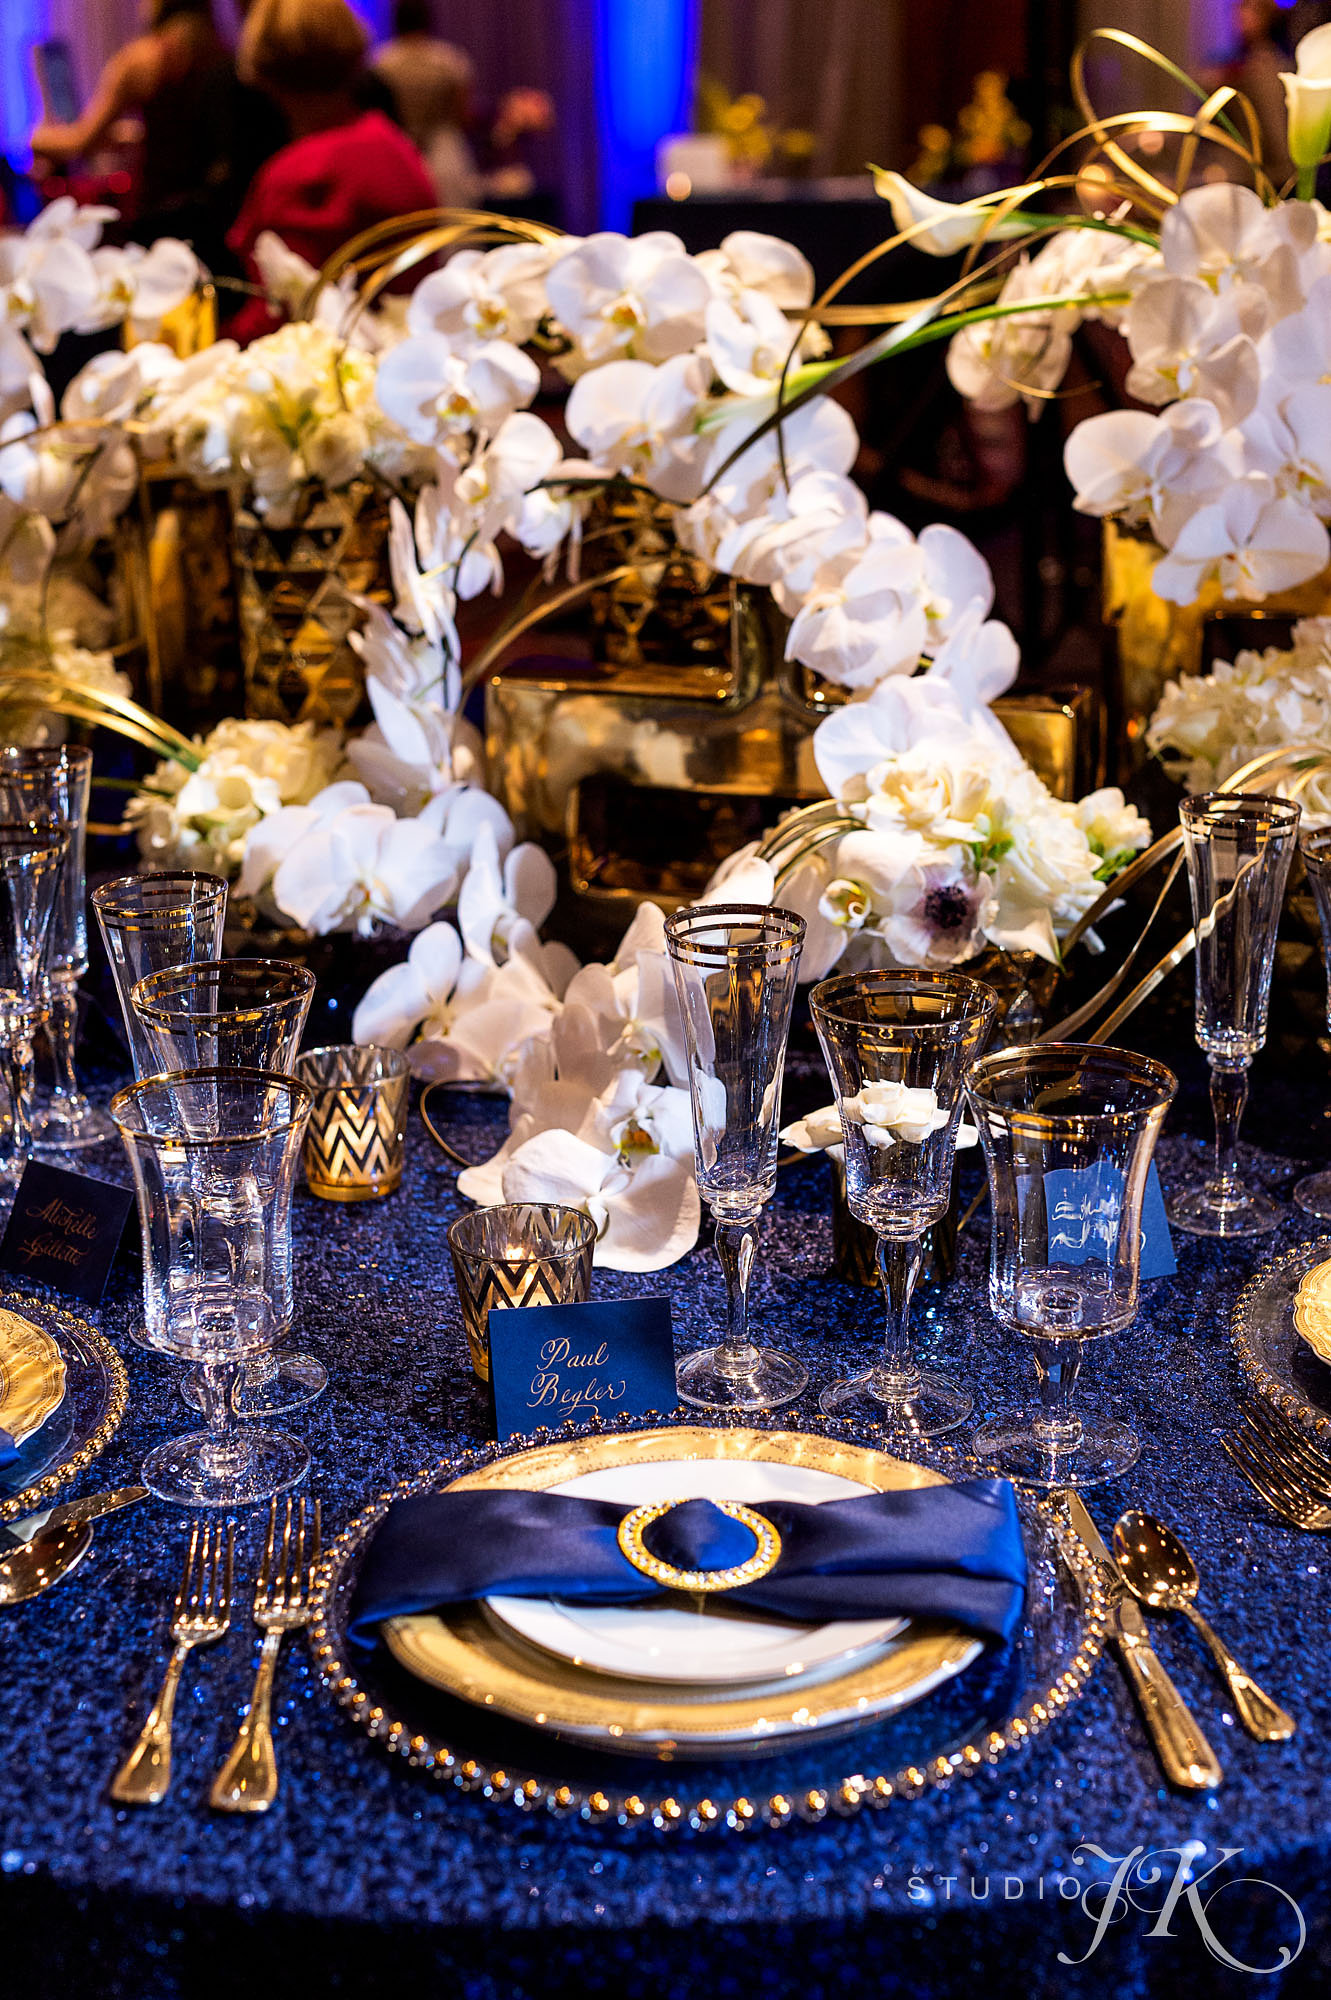 Navy and Gold Table Top with White Orchids